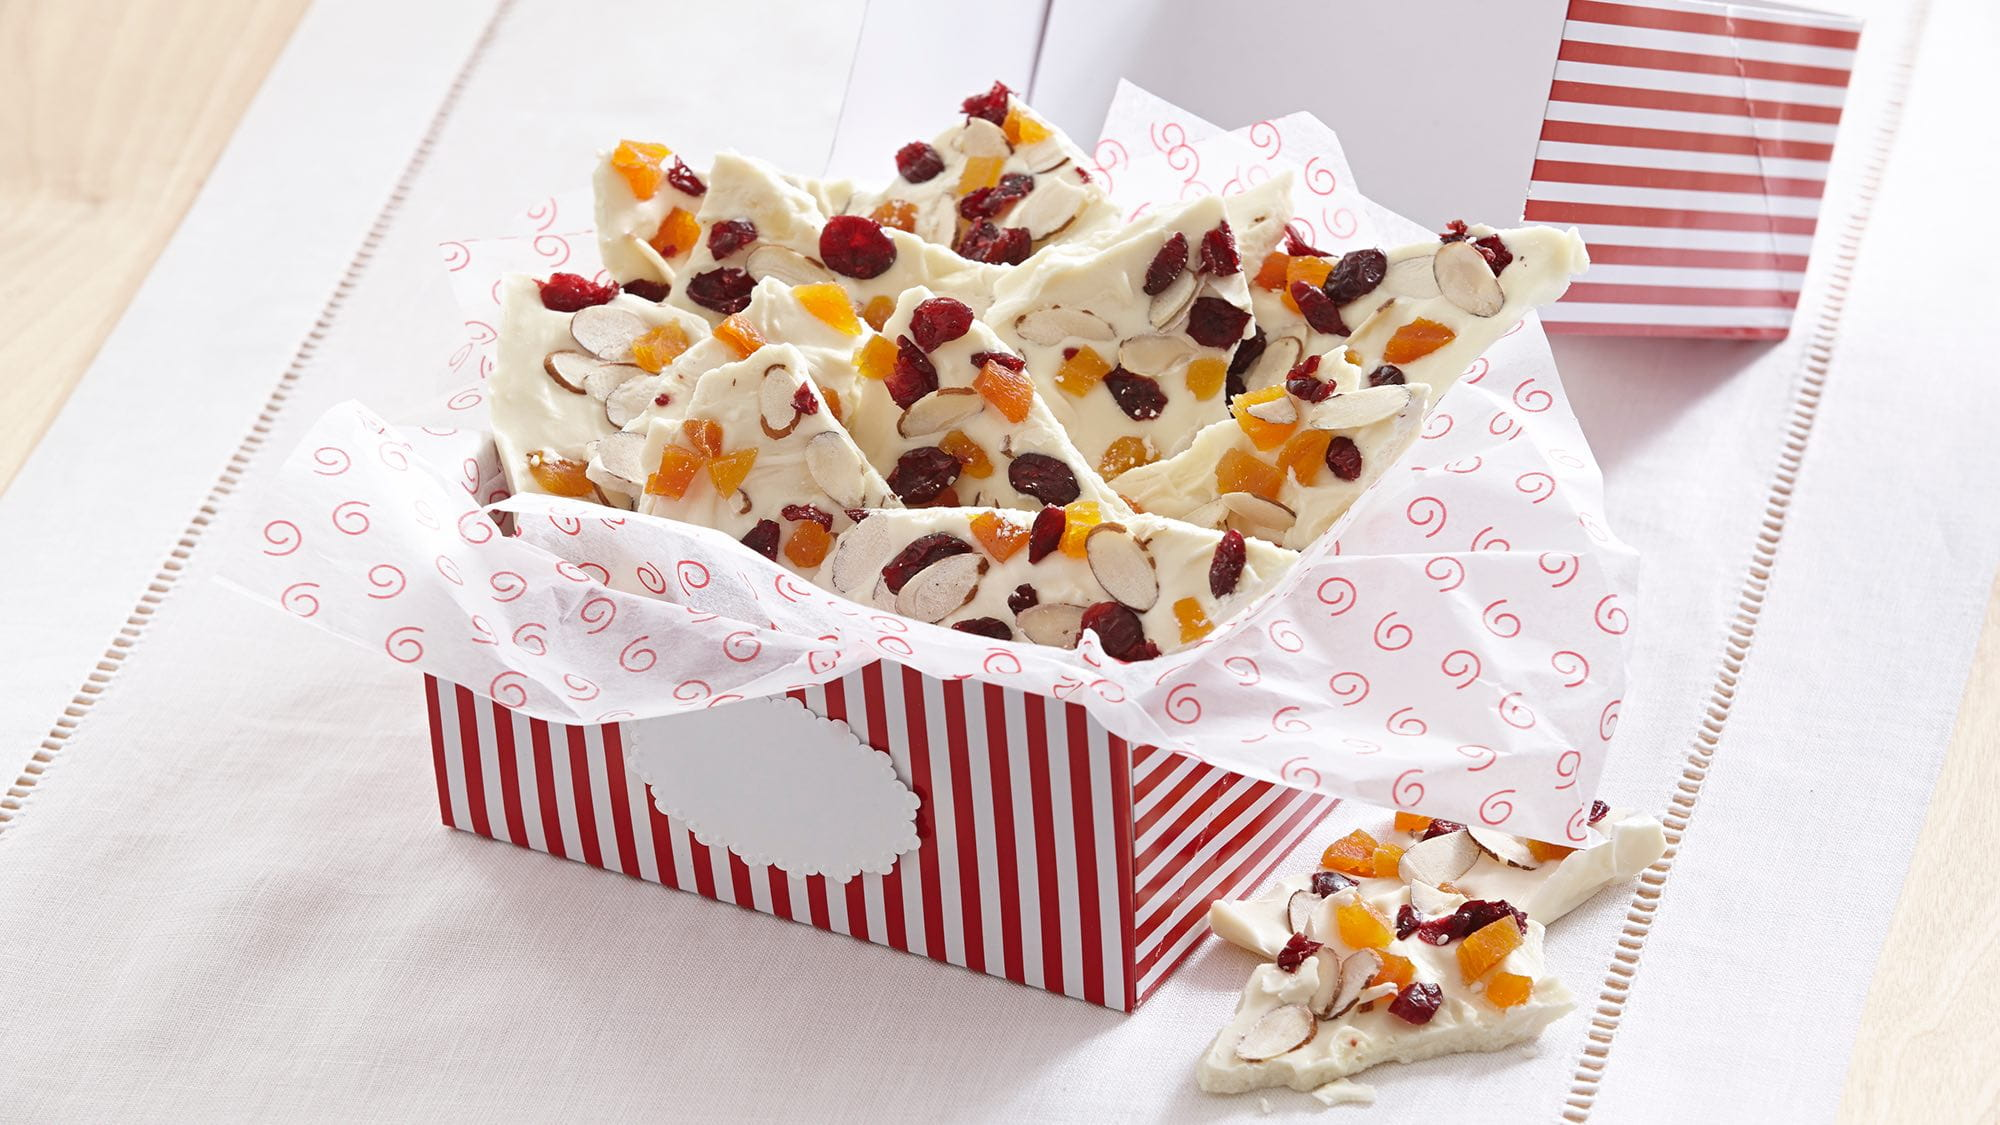 orange-white-chocolate-bark-with-cranberries-and-apricots.jpg